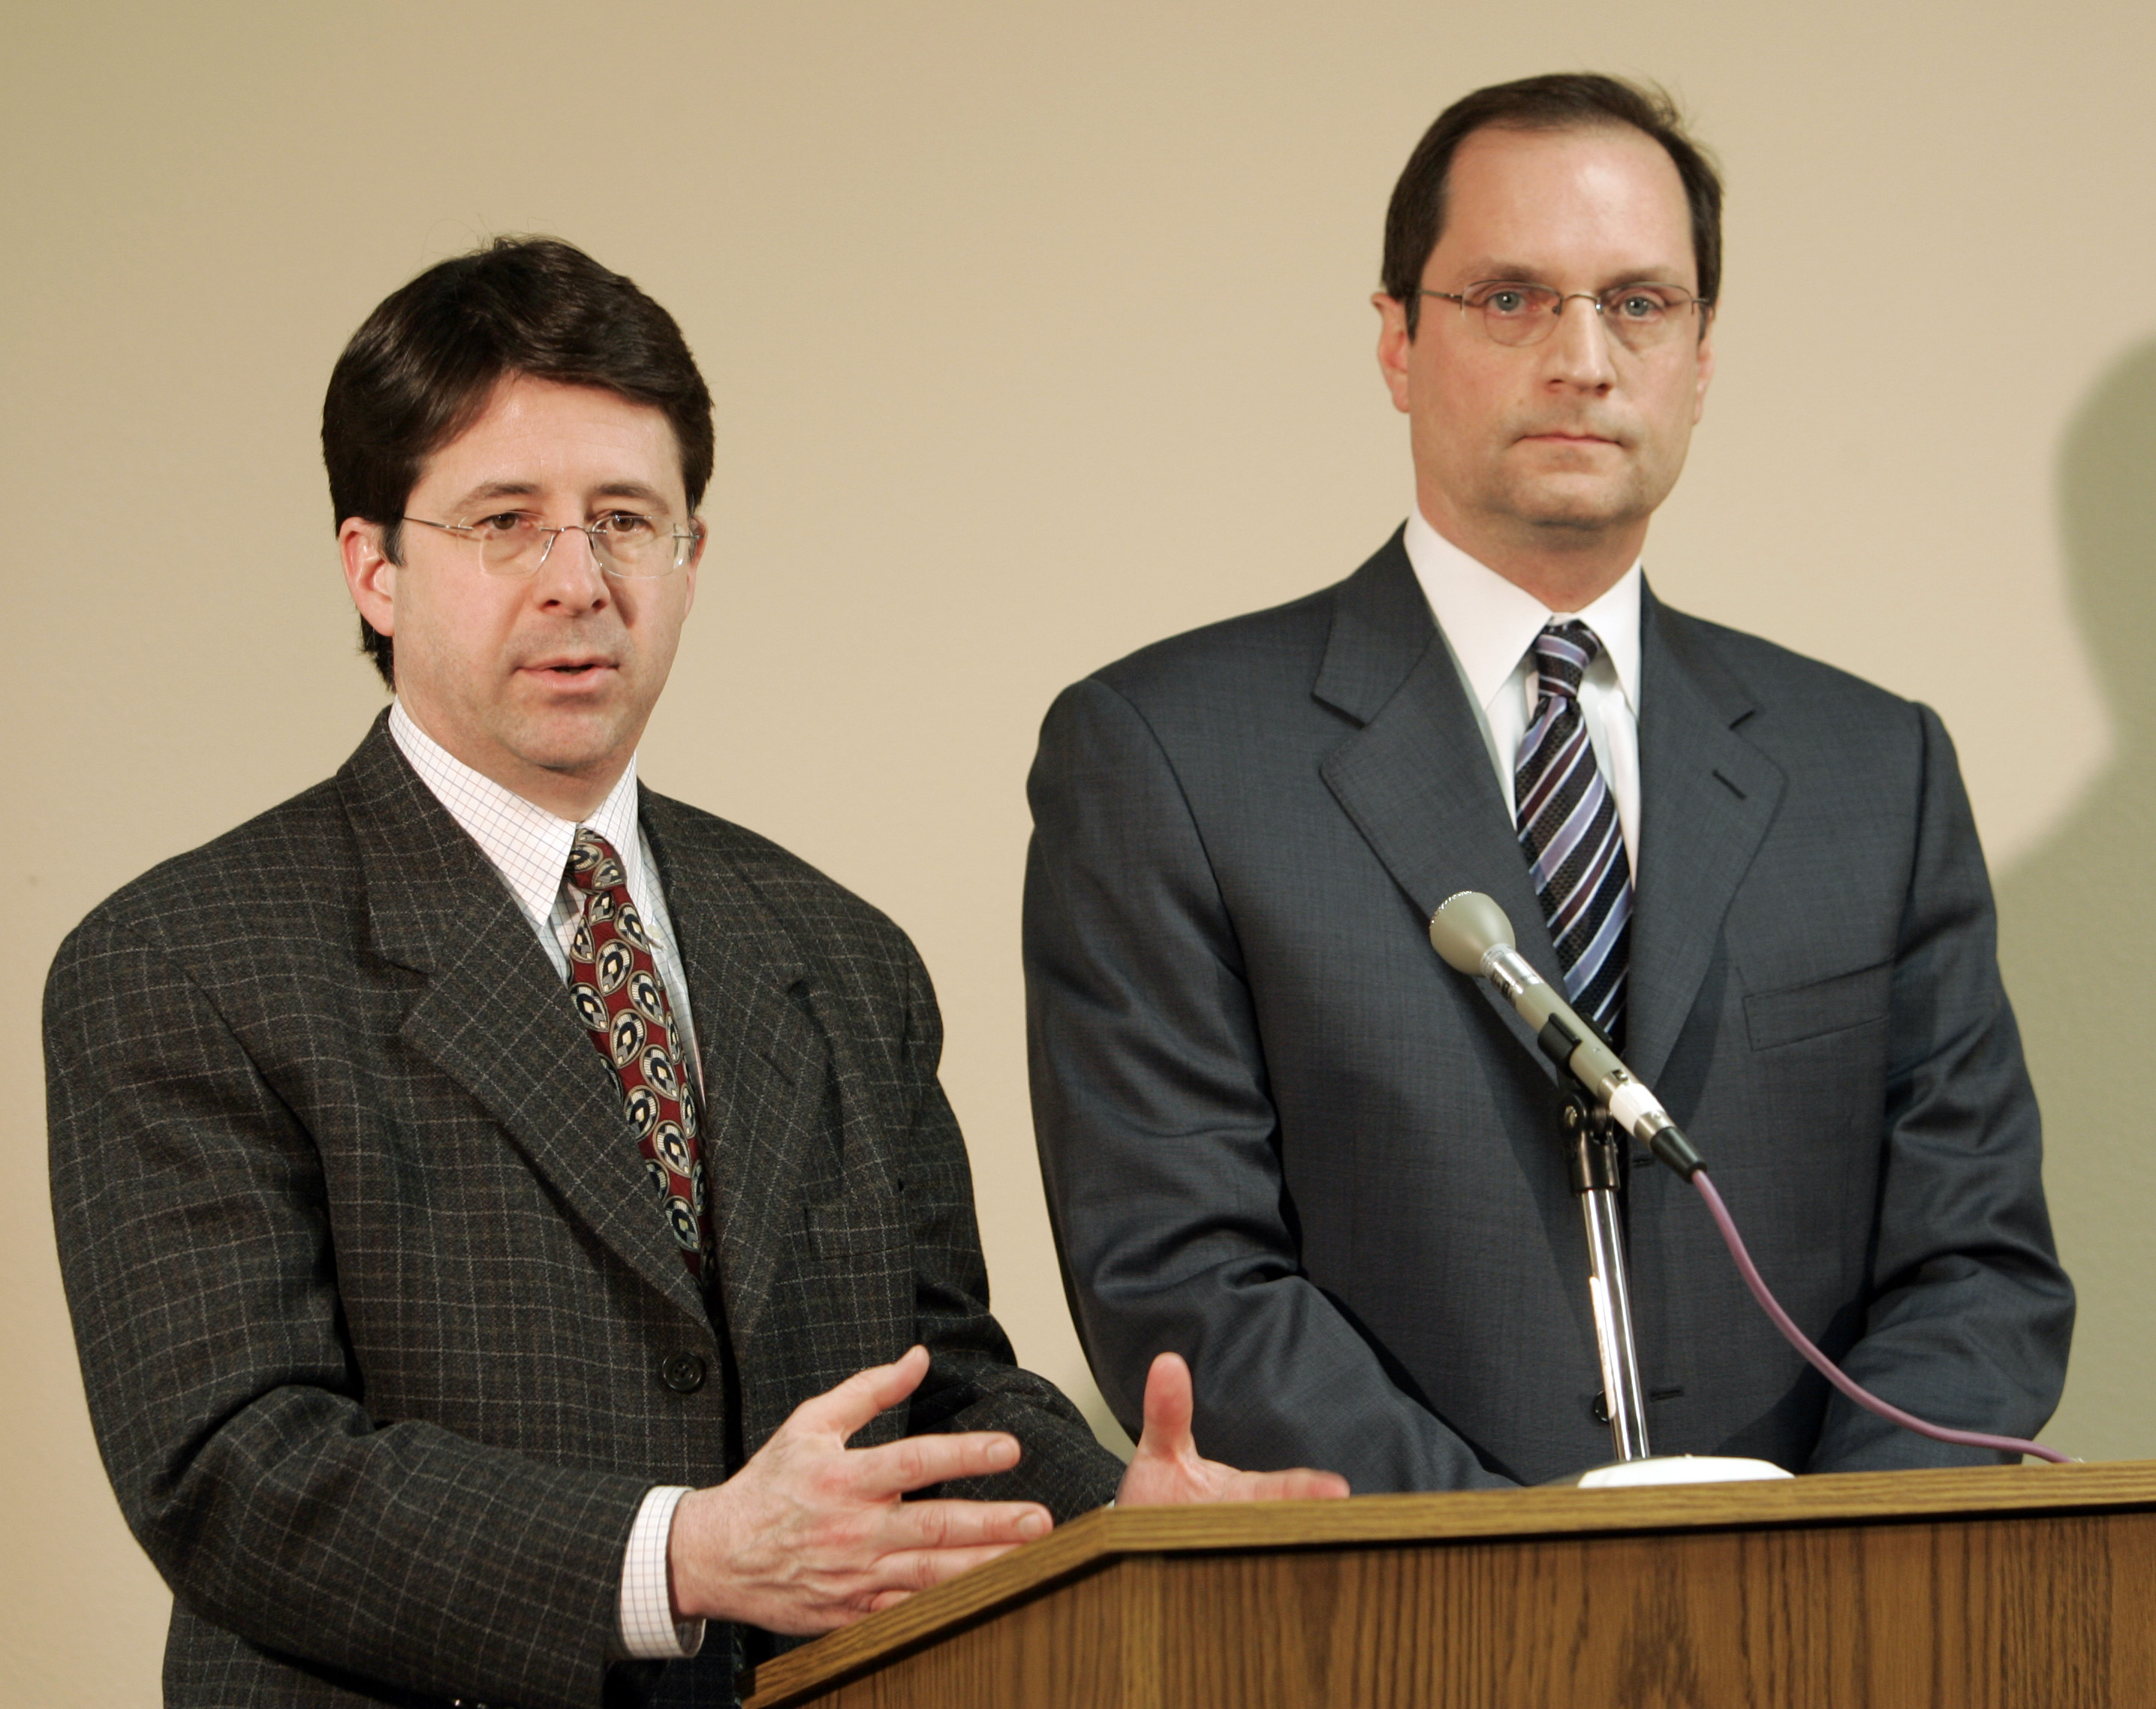 Steven Avery's attorney's Dean Spang, left, and Jerome Buting answer questions in a Calumet County Courthouse Sunday, March 1